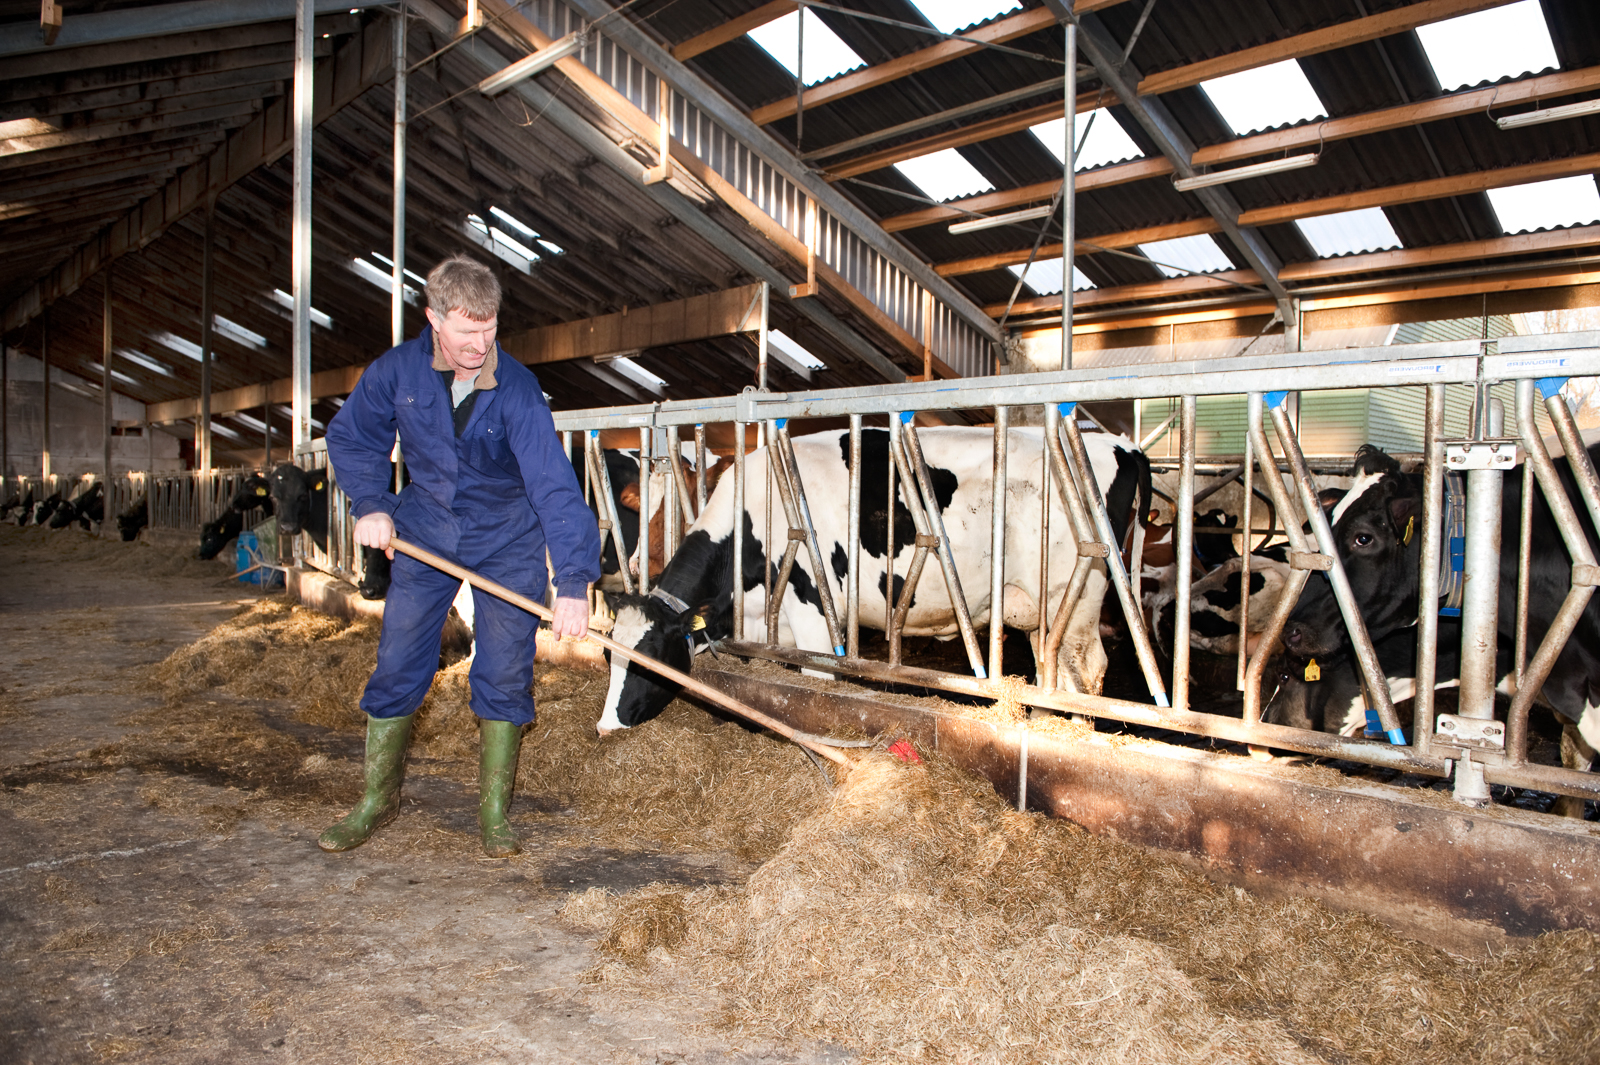 Farmer cleaning a modern stable, while one of his cows is eating